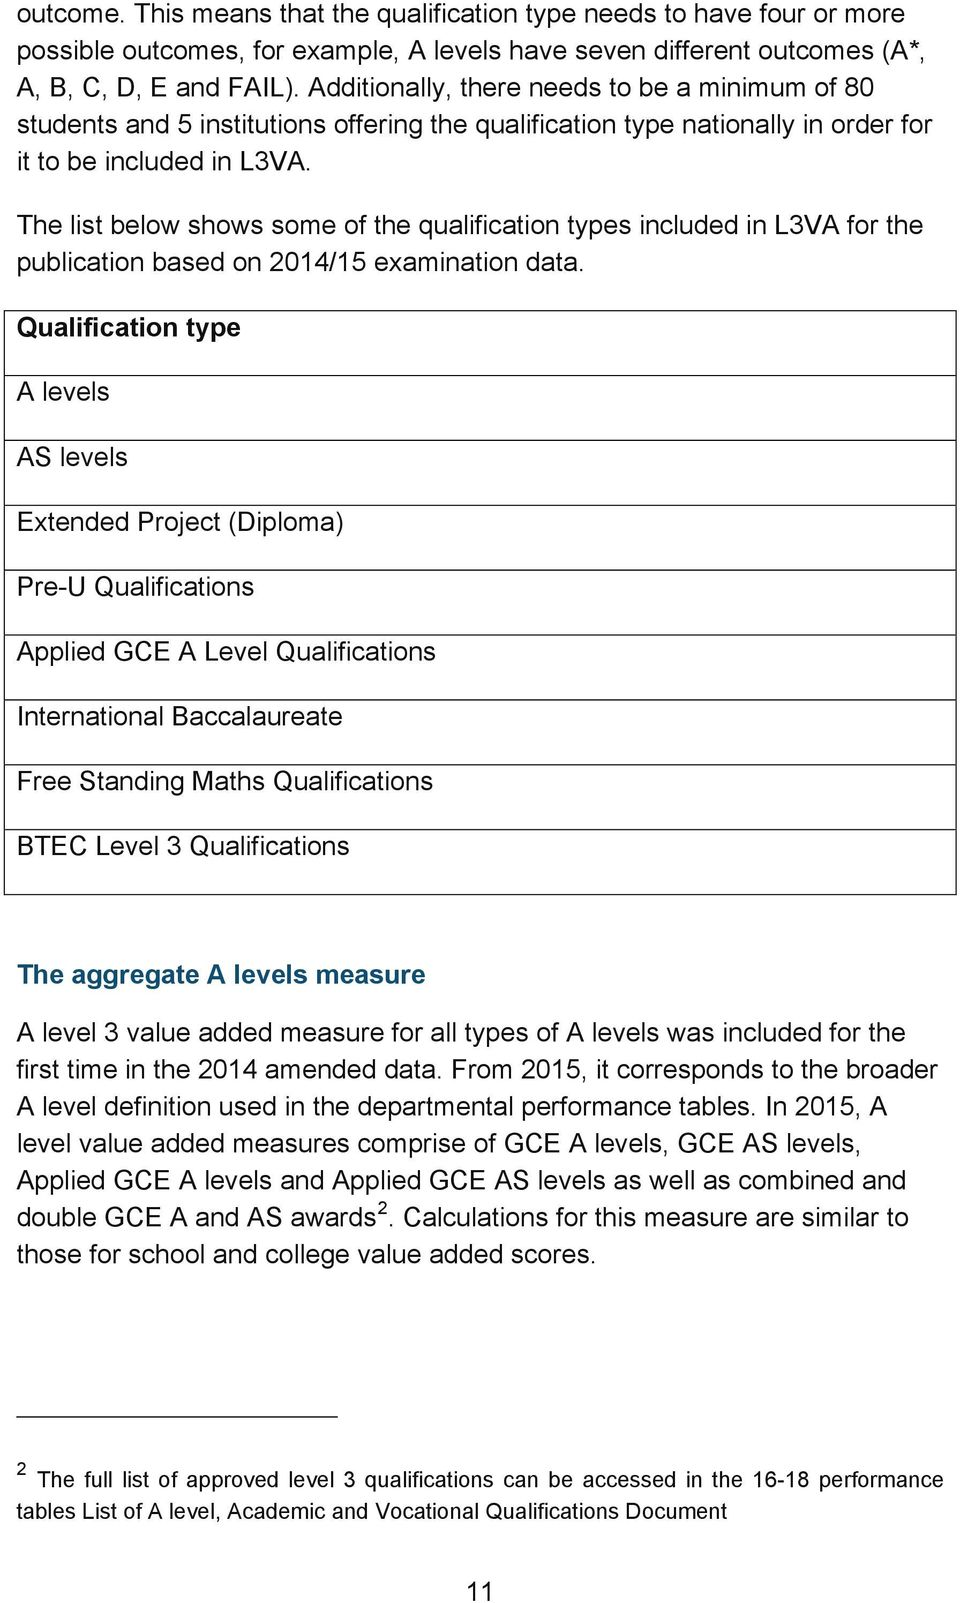 The list below shows some of the qualification types included in L3VA for the publication based on 2014/15 examination data.